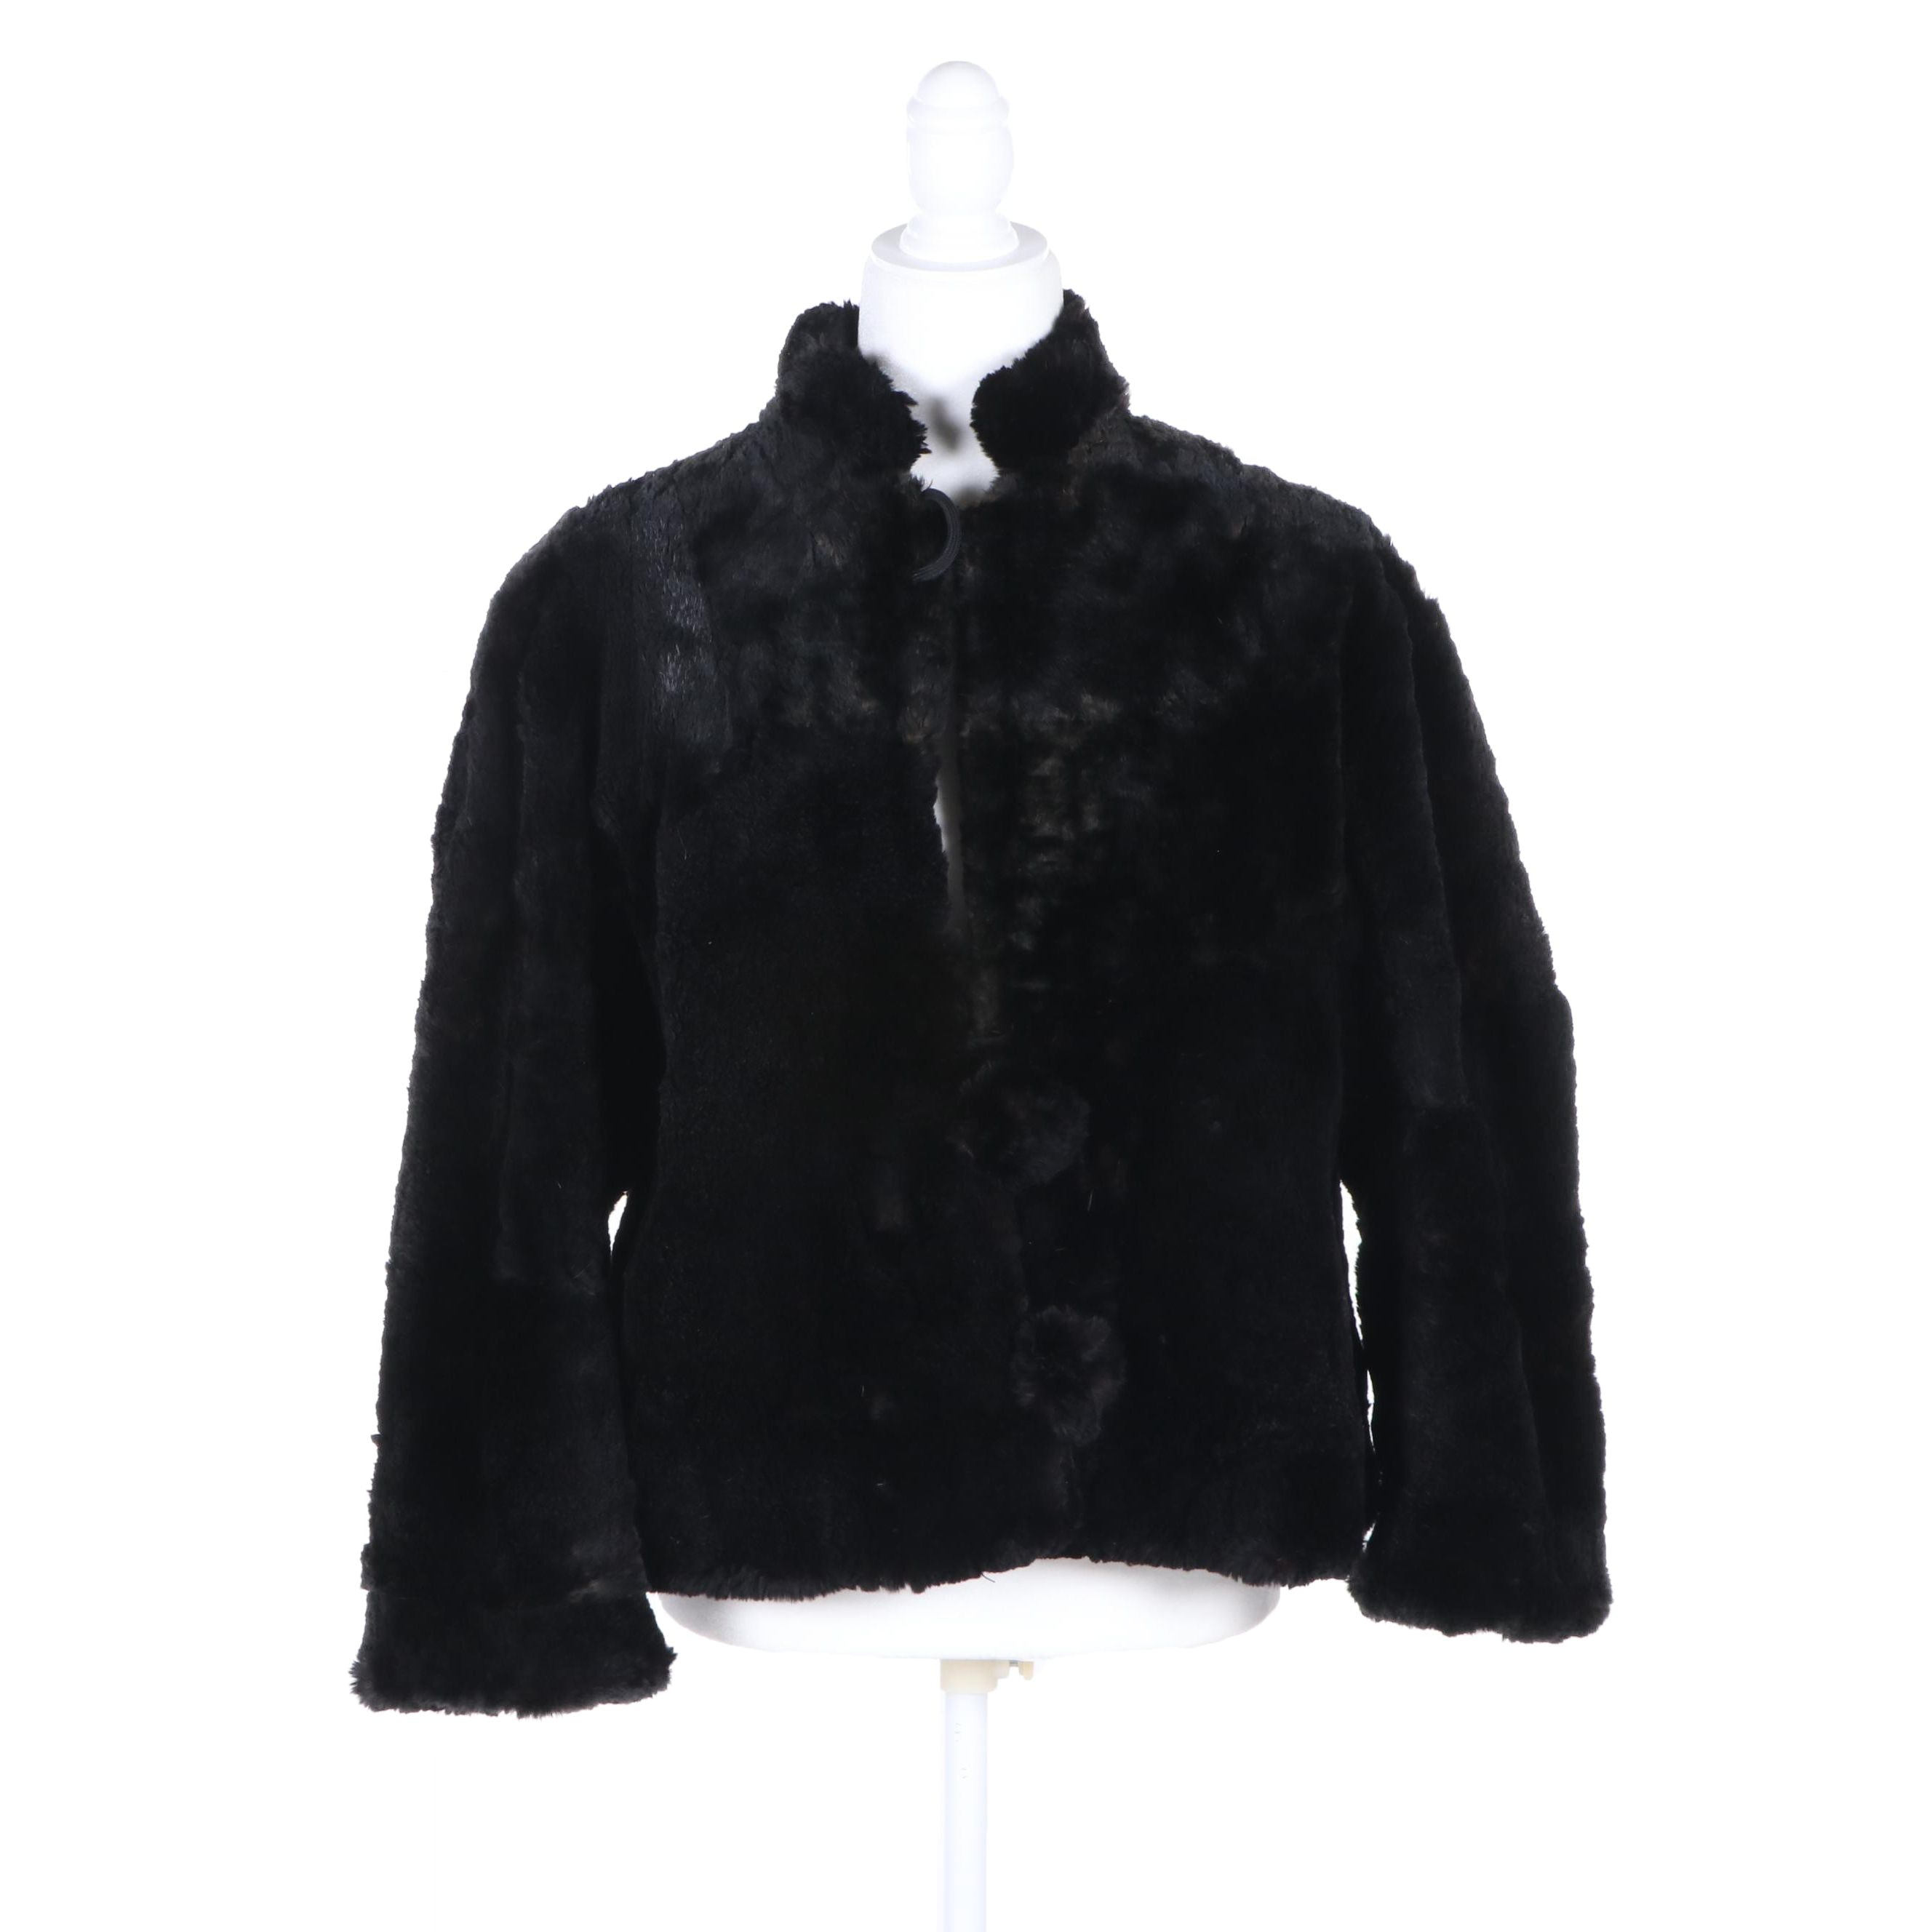 Women's Sheared Dyed Black Beaver Fur Jacket, Vintage